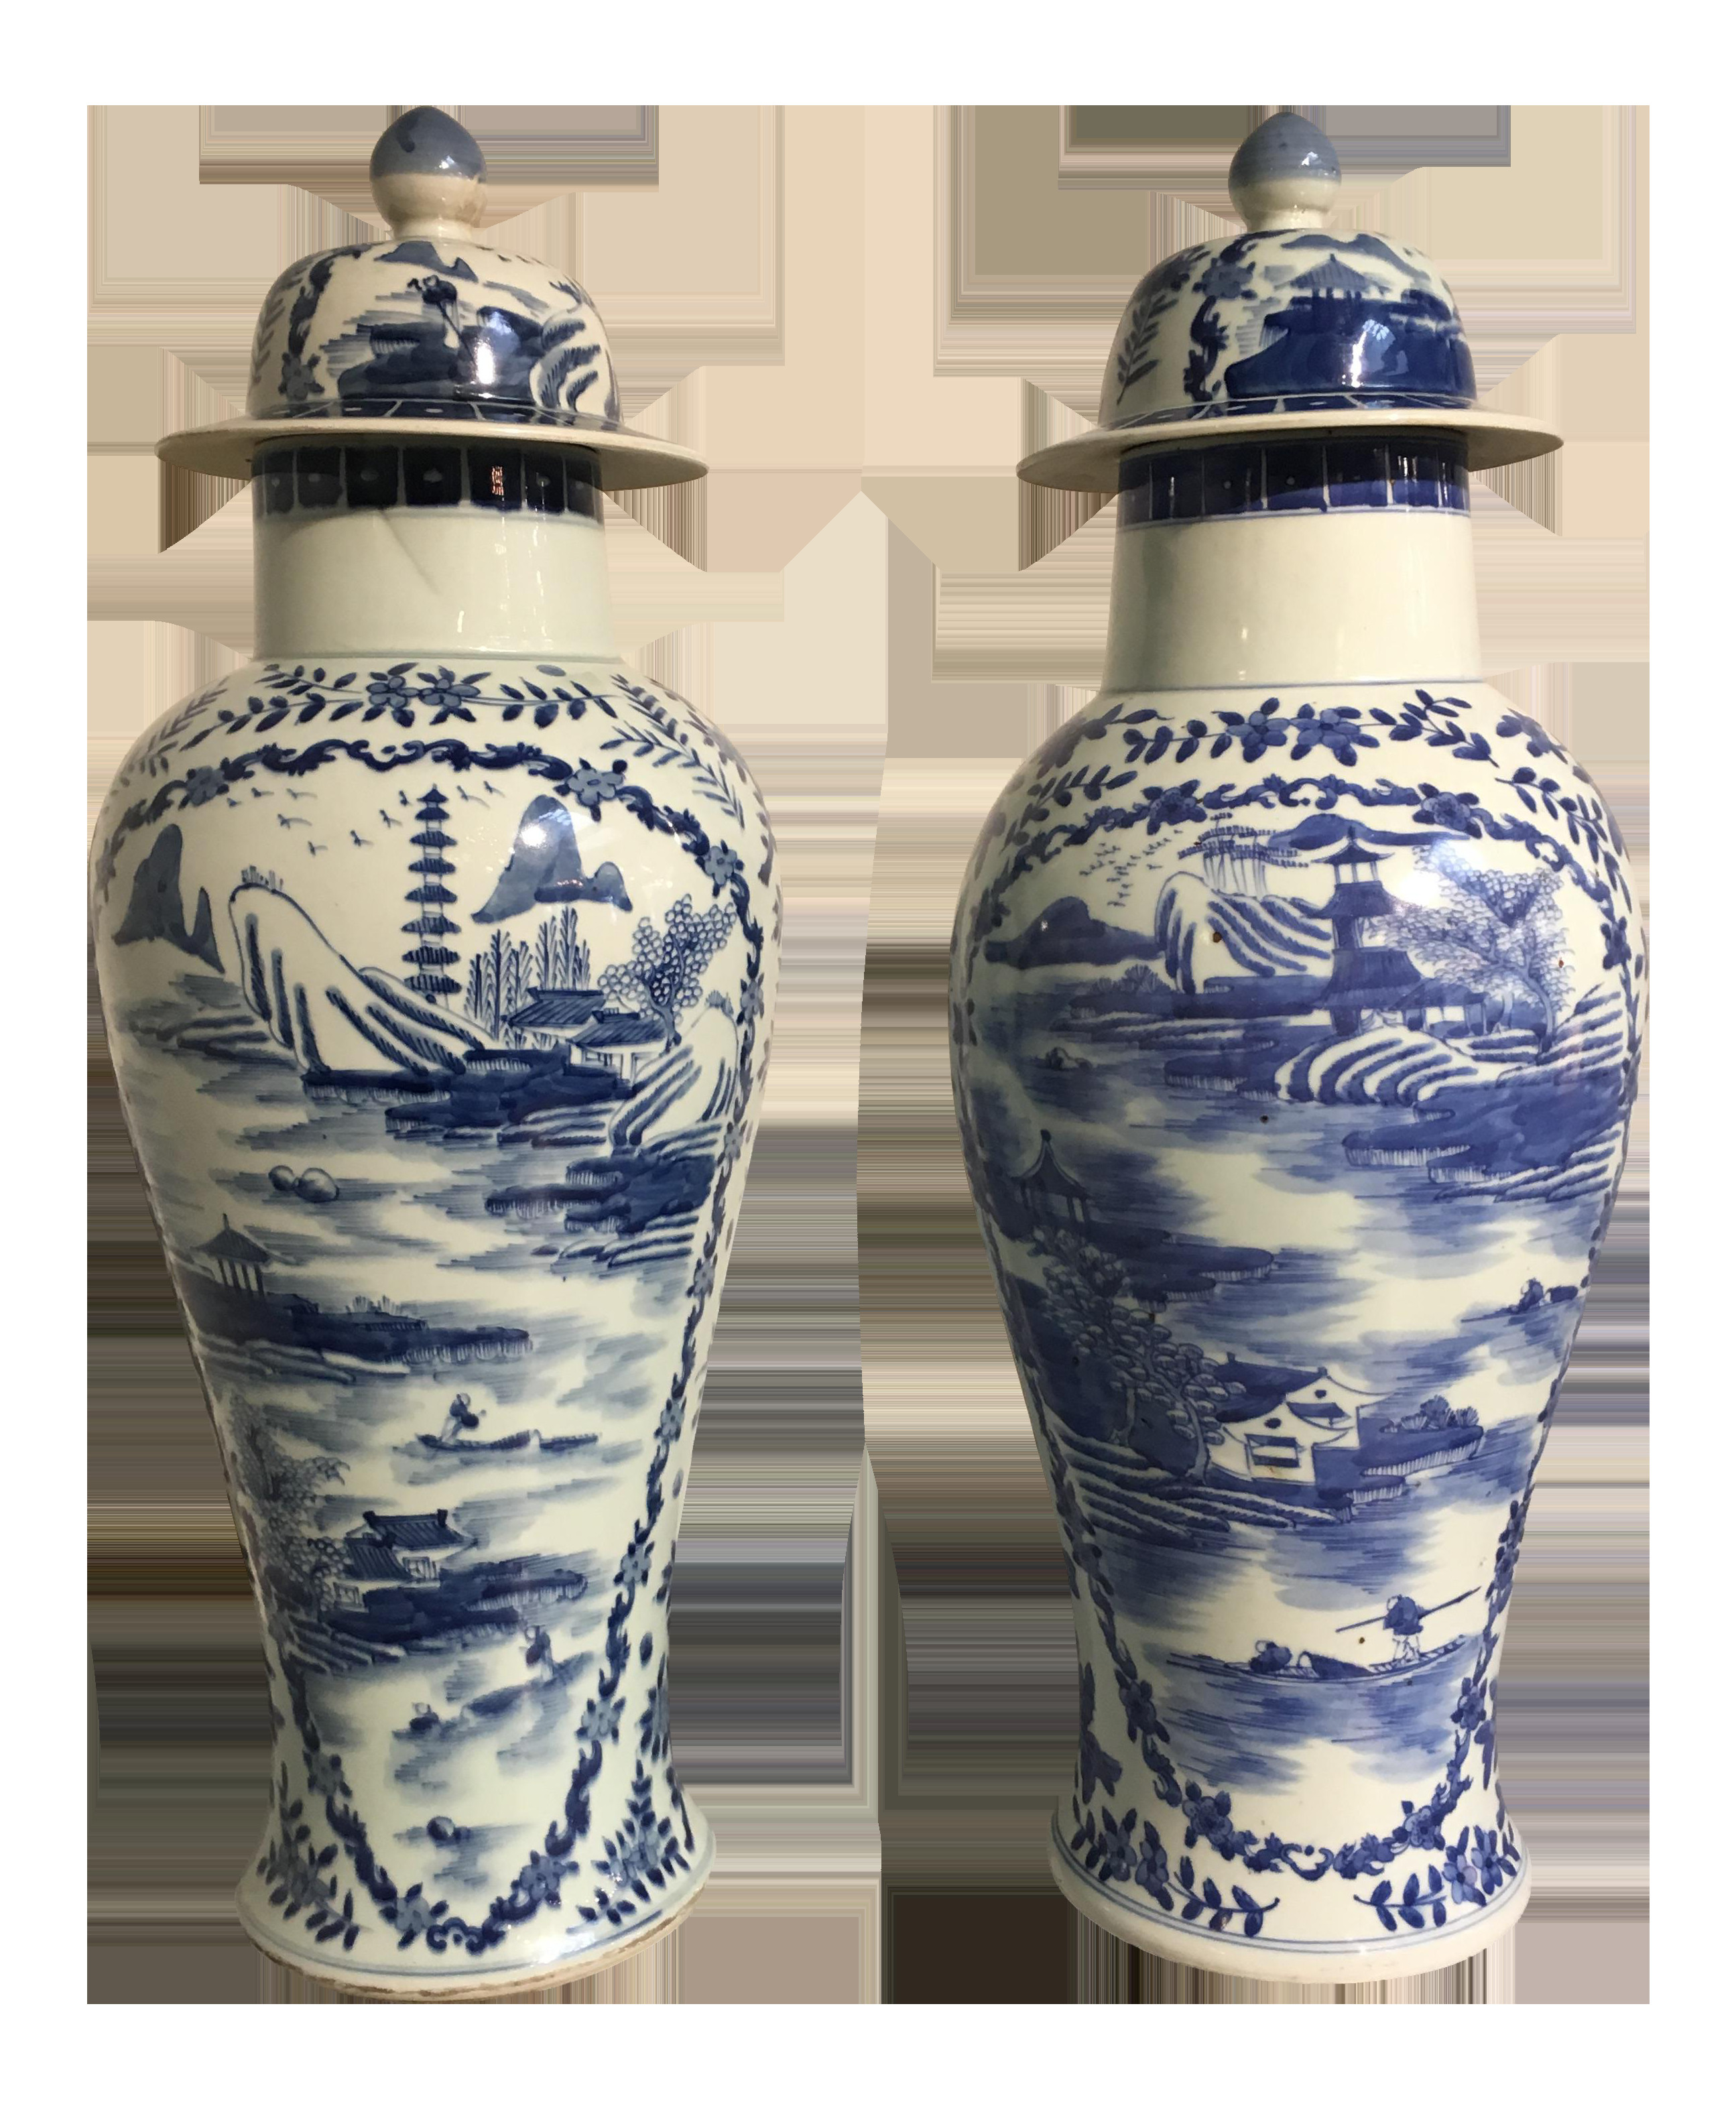 qing dynasty vase of world class chinese tall blue and white baluster covered porcelain throughout world class chinese tall blue and white baluster covered porcelain vases circa 1900 a pair decaso